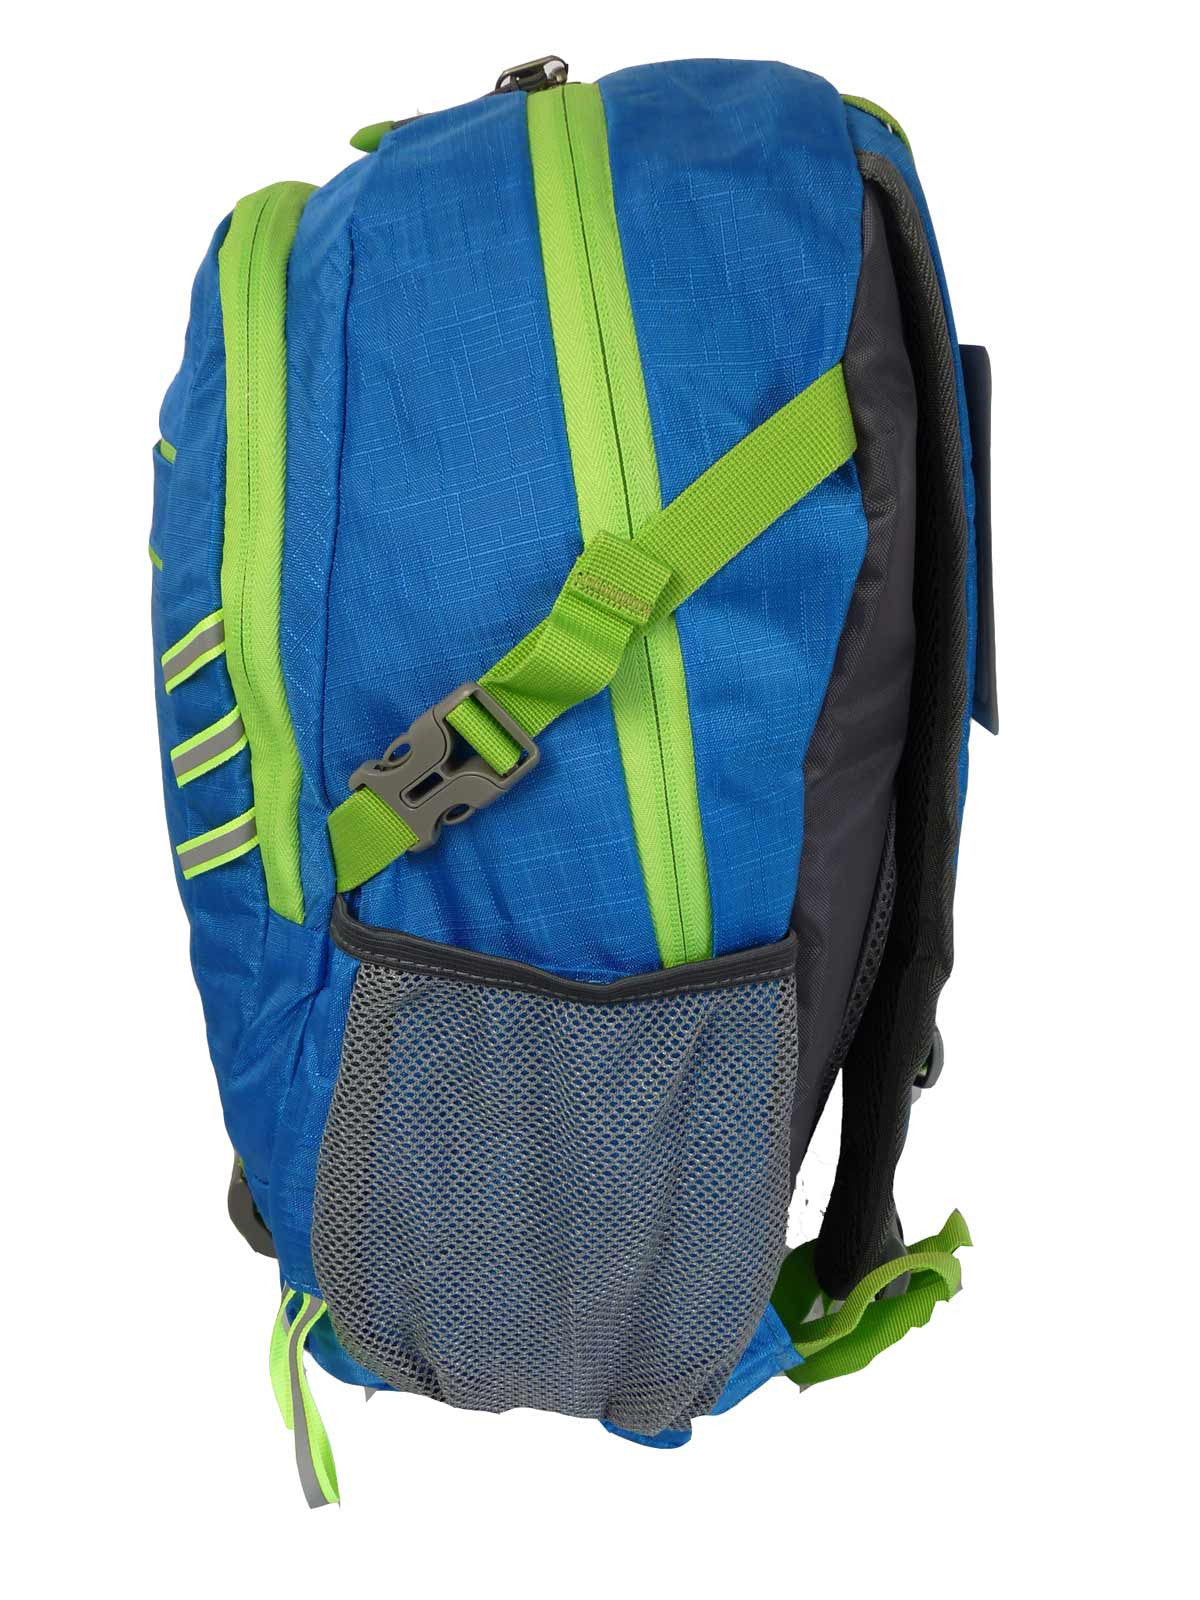 Hi High Viz Vis Backpack RL47LB Light Blue Side Side View